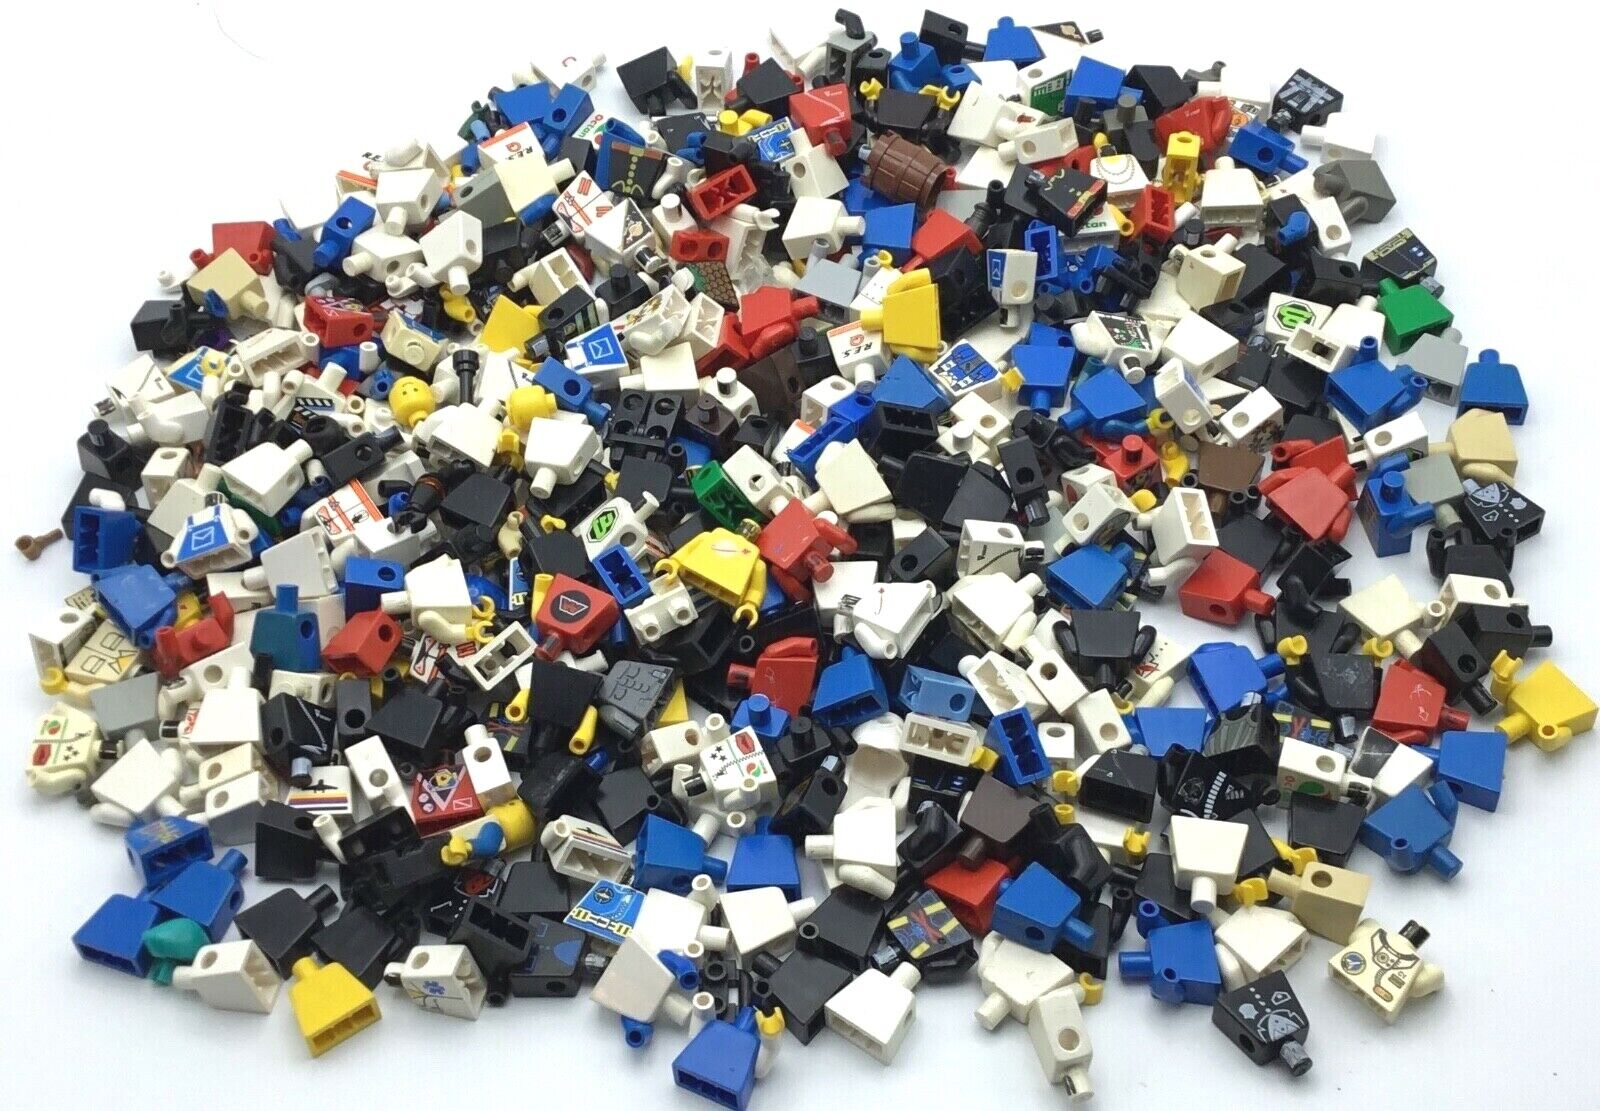 LEGO HUGE 1 POUND LOT OF TORSO PIECES BODY PARTS BULK SPACE TOWN PEOPLE CHESTS